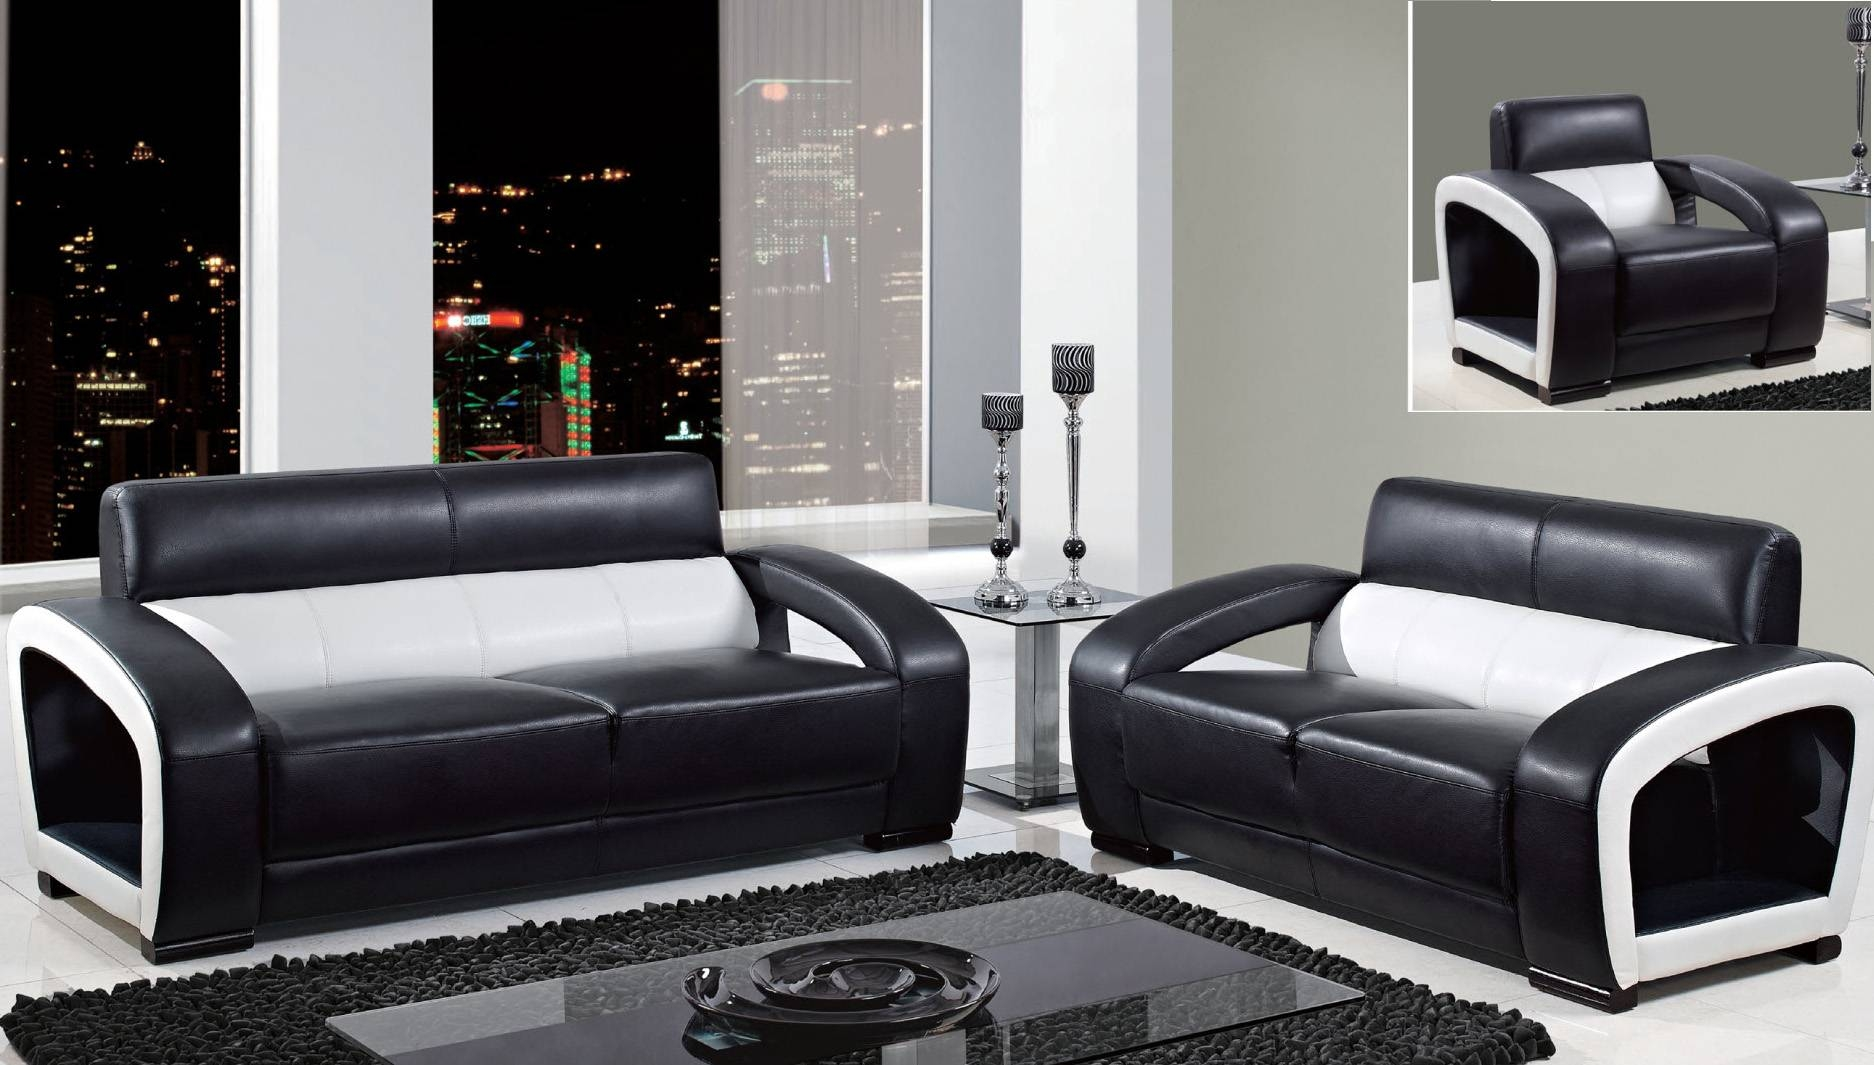 Black And White Leather Sofa With Ideas Gallery 10356 | Kengire with regard to Black And White Sofas (Image 6 of 30)